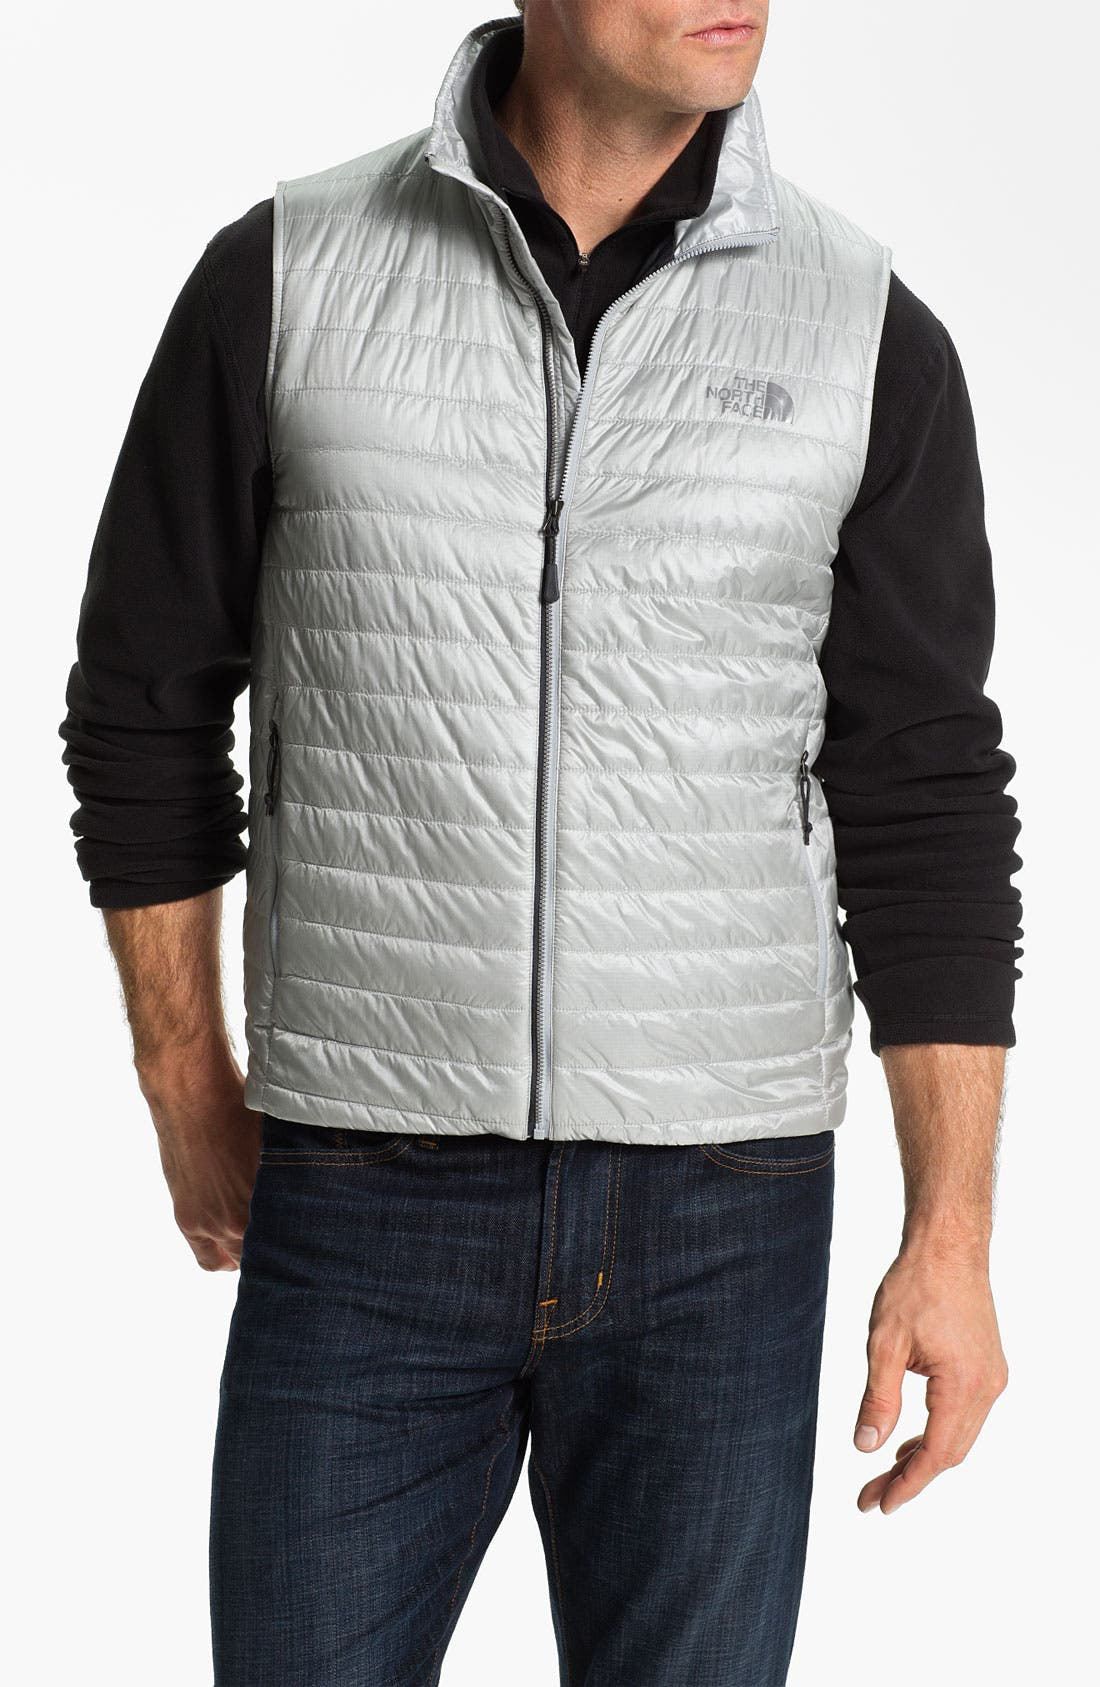 Alternate Image 1 Selected - The North Face 'Blaze' Vest